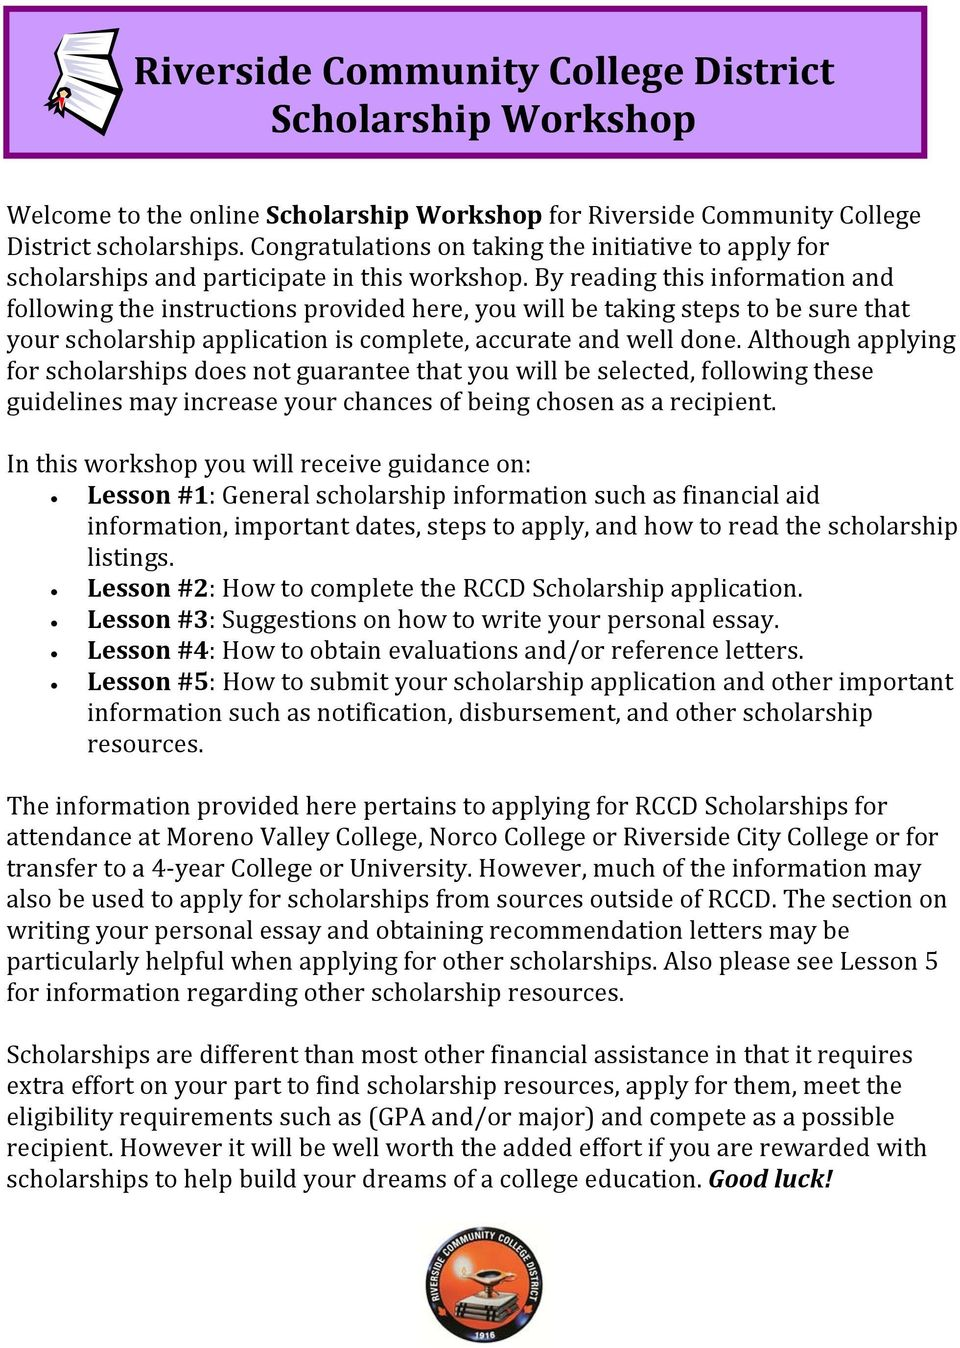 By reading this information and following the instructions provided here, you will be taking steps to be sure that your scholarship application is complete, accurate and well done.